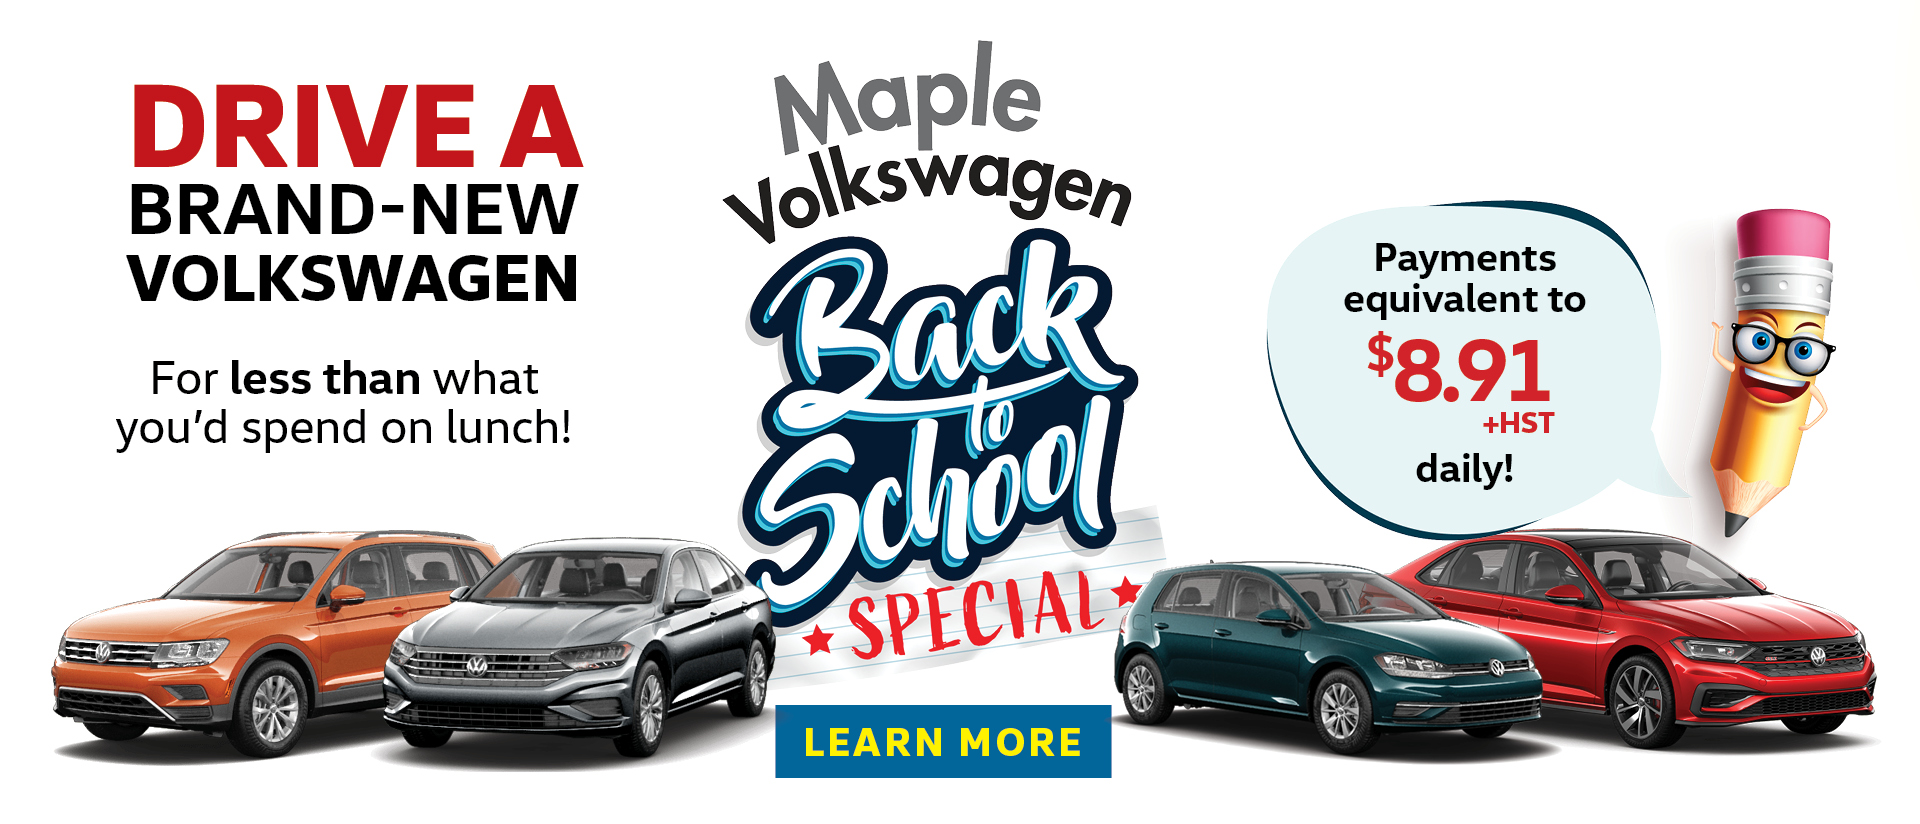 Discover New & Used Volkswagen Models at Maple Volkswagen